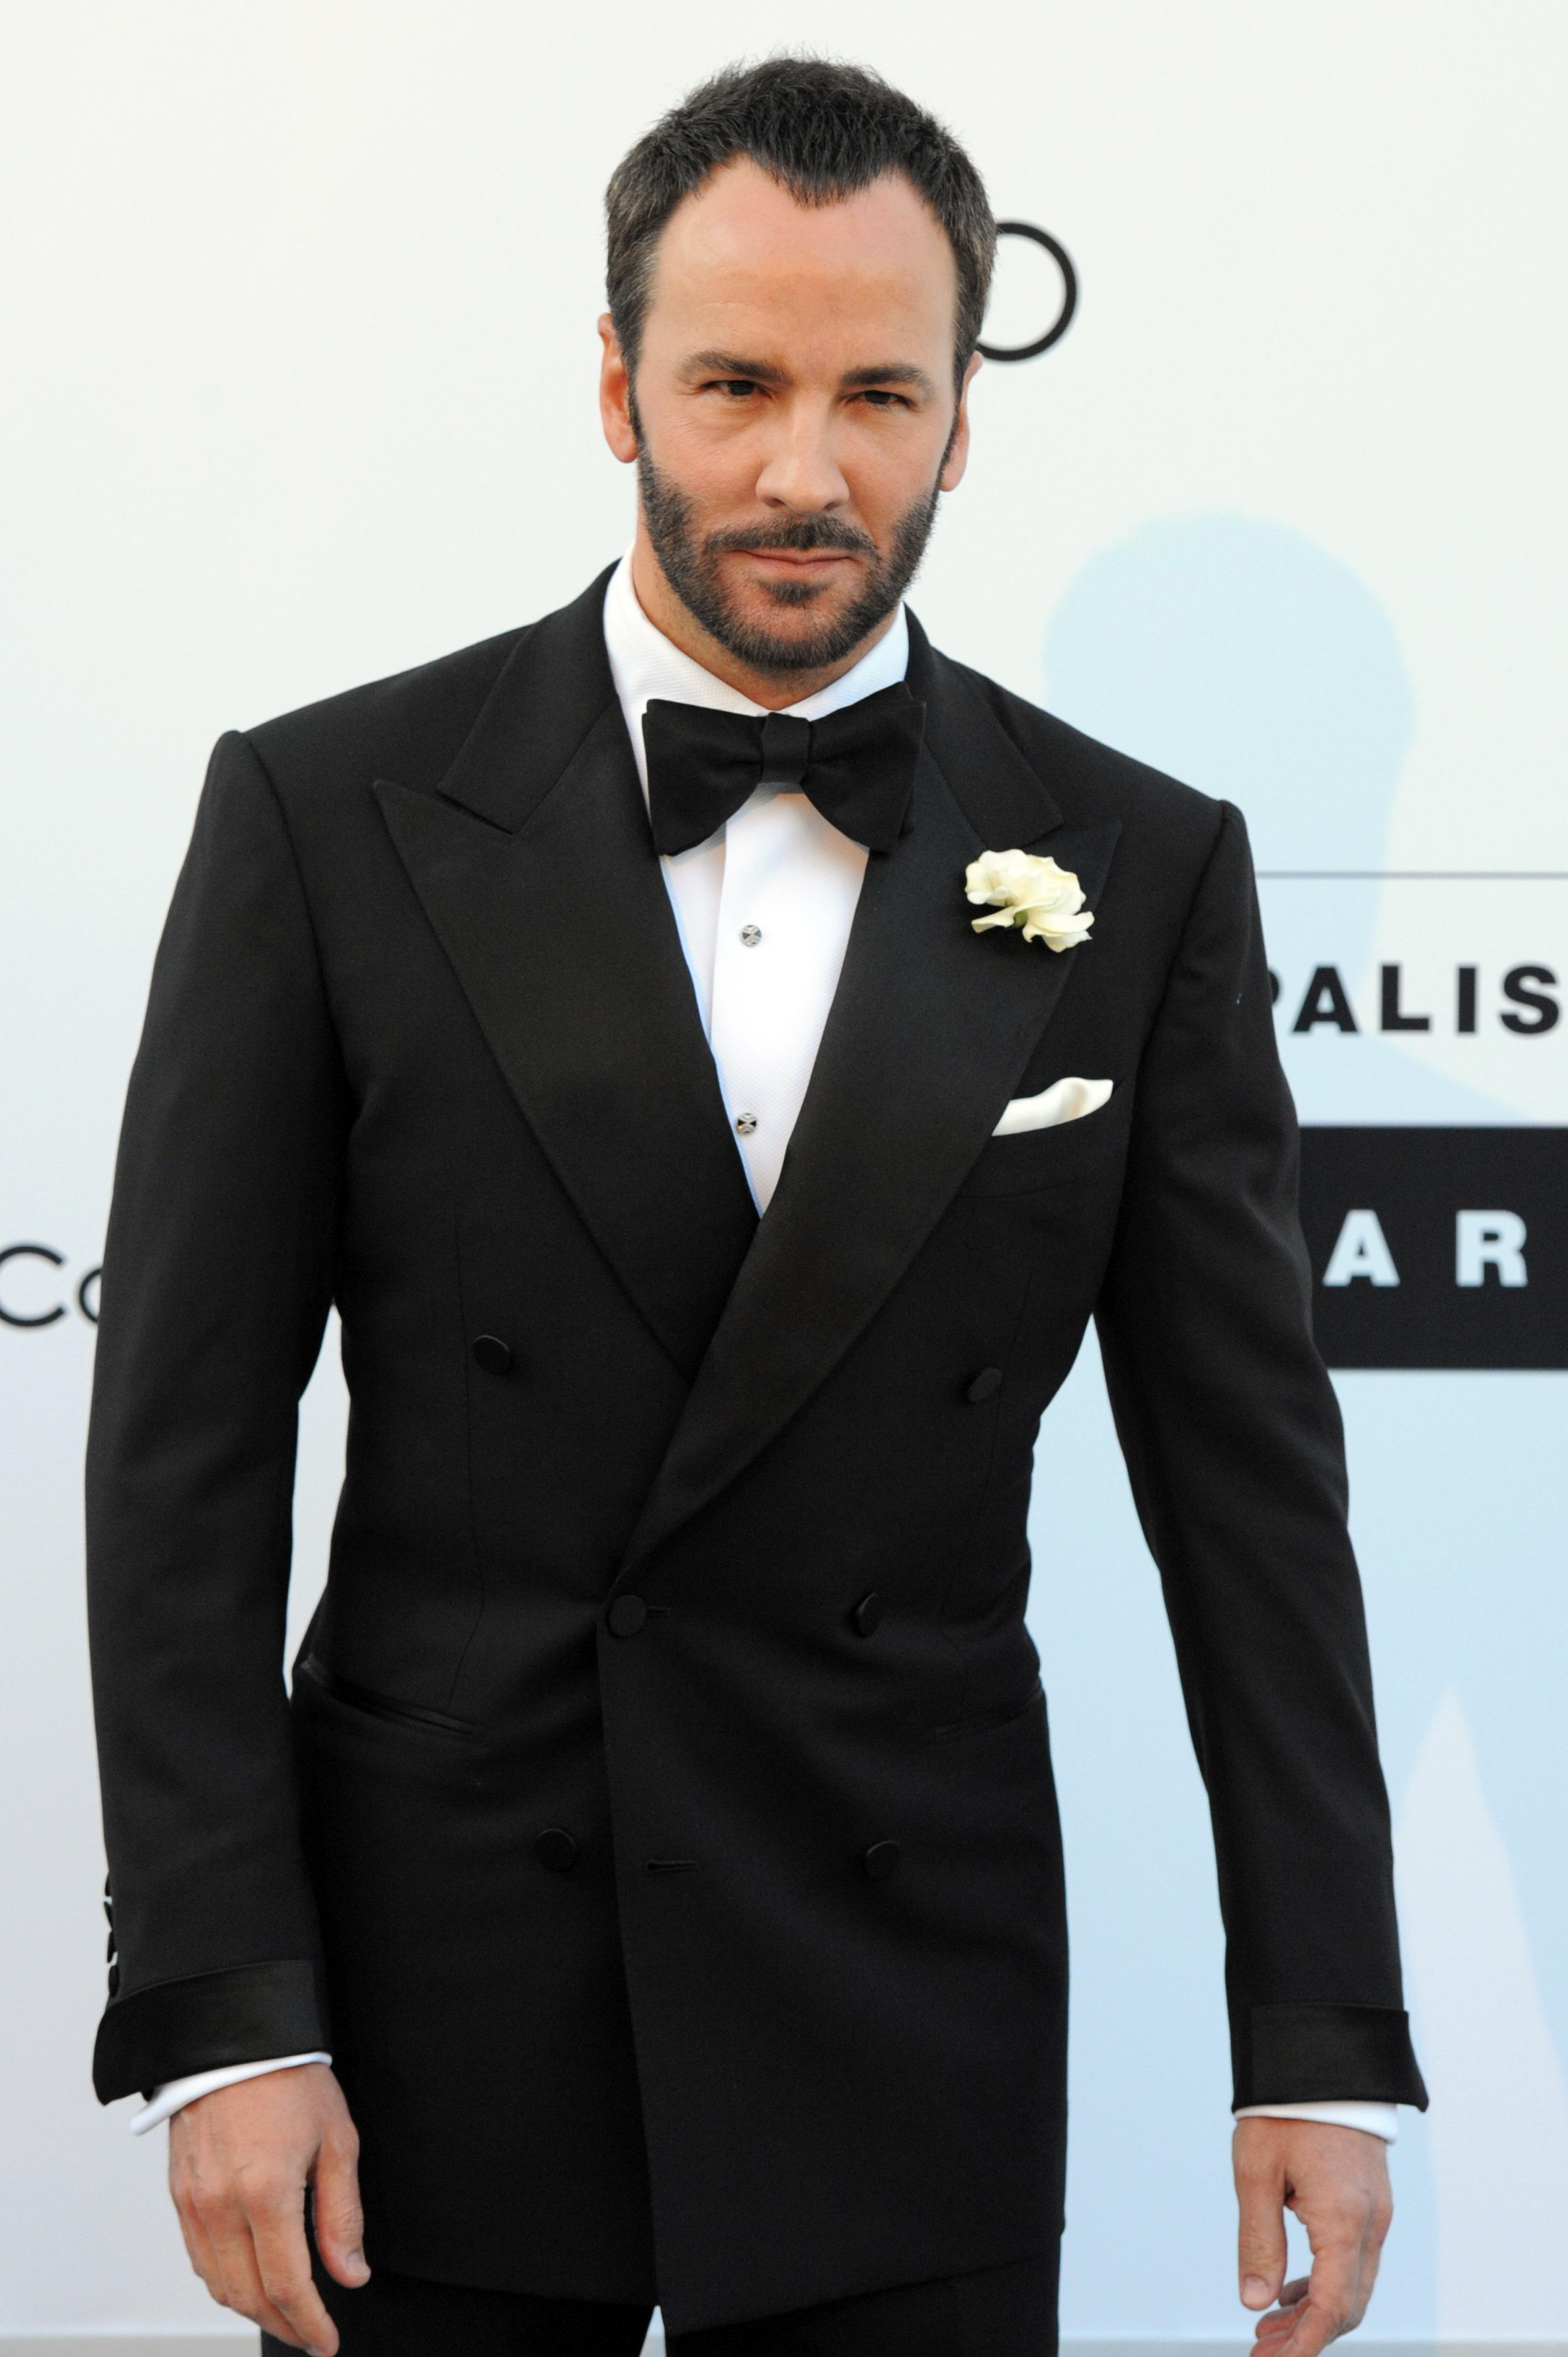 release date announced for tom ford 39 s upcoming movie. Black Bedroom Furniture Sets. Home Design Ideas